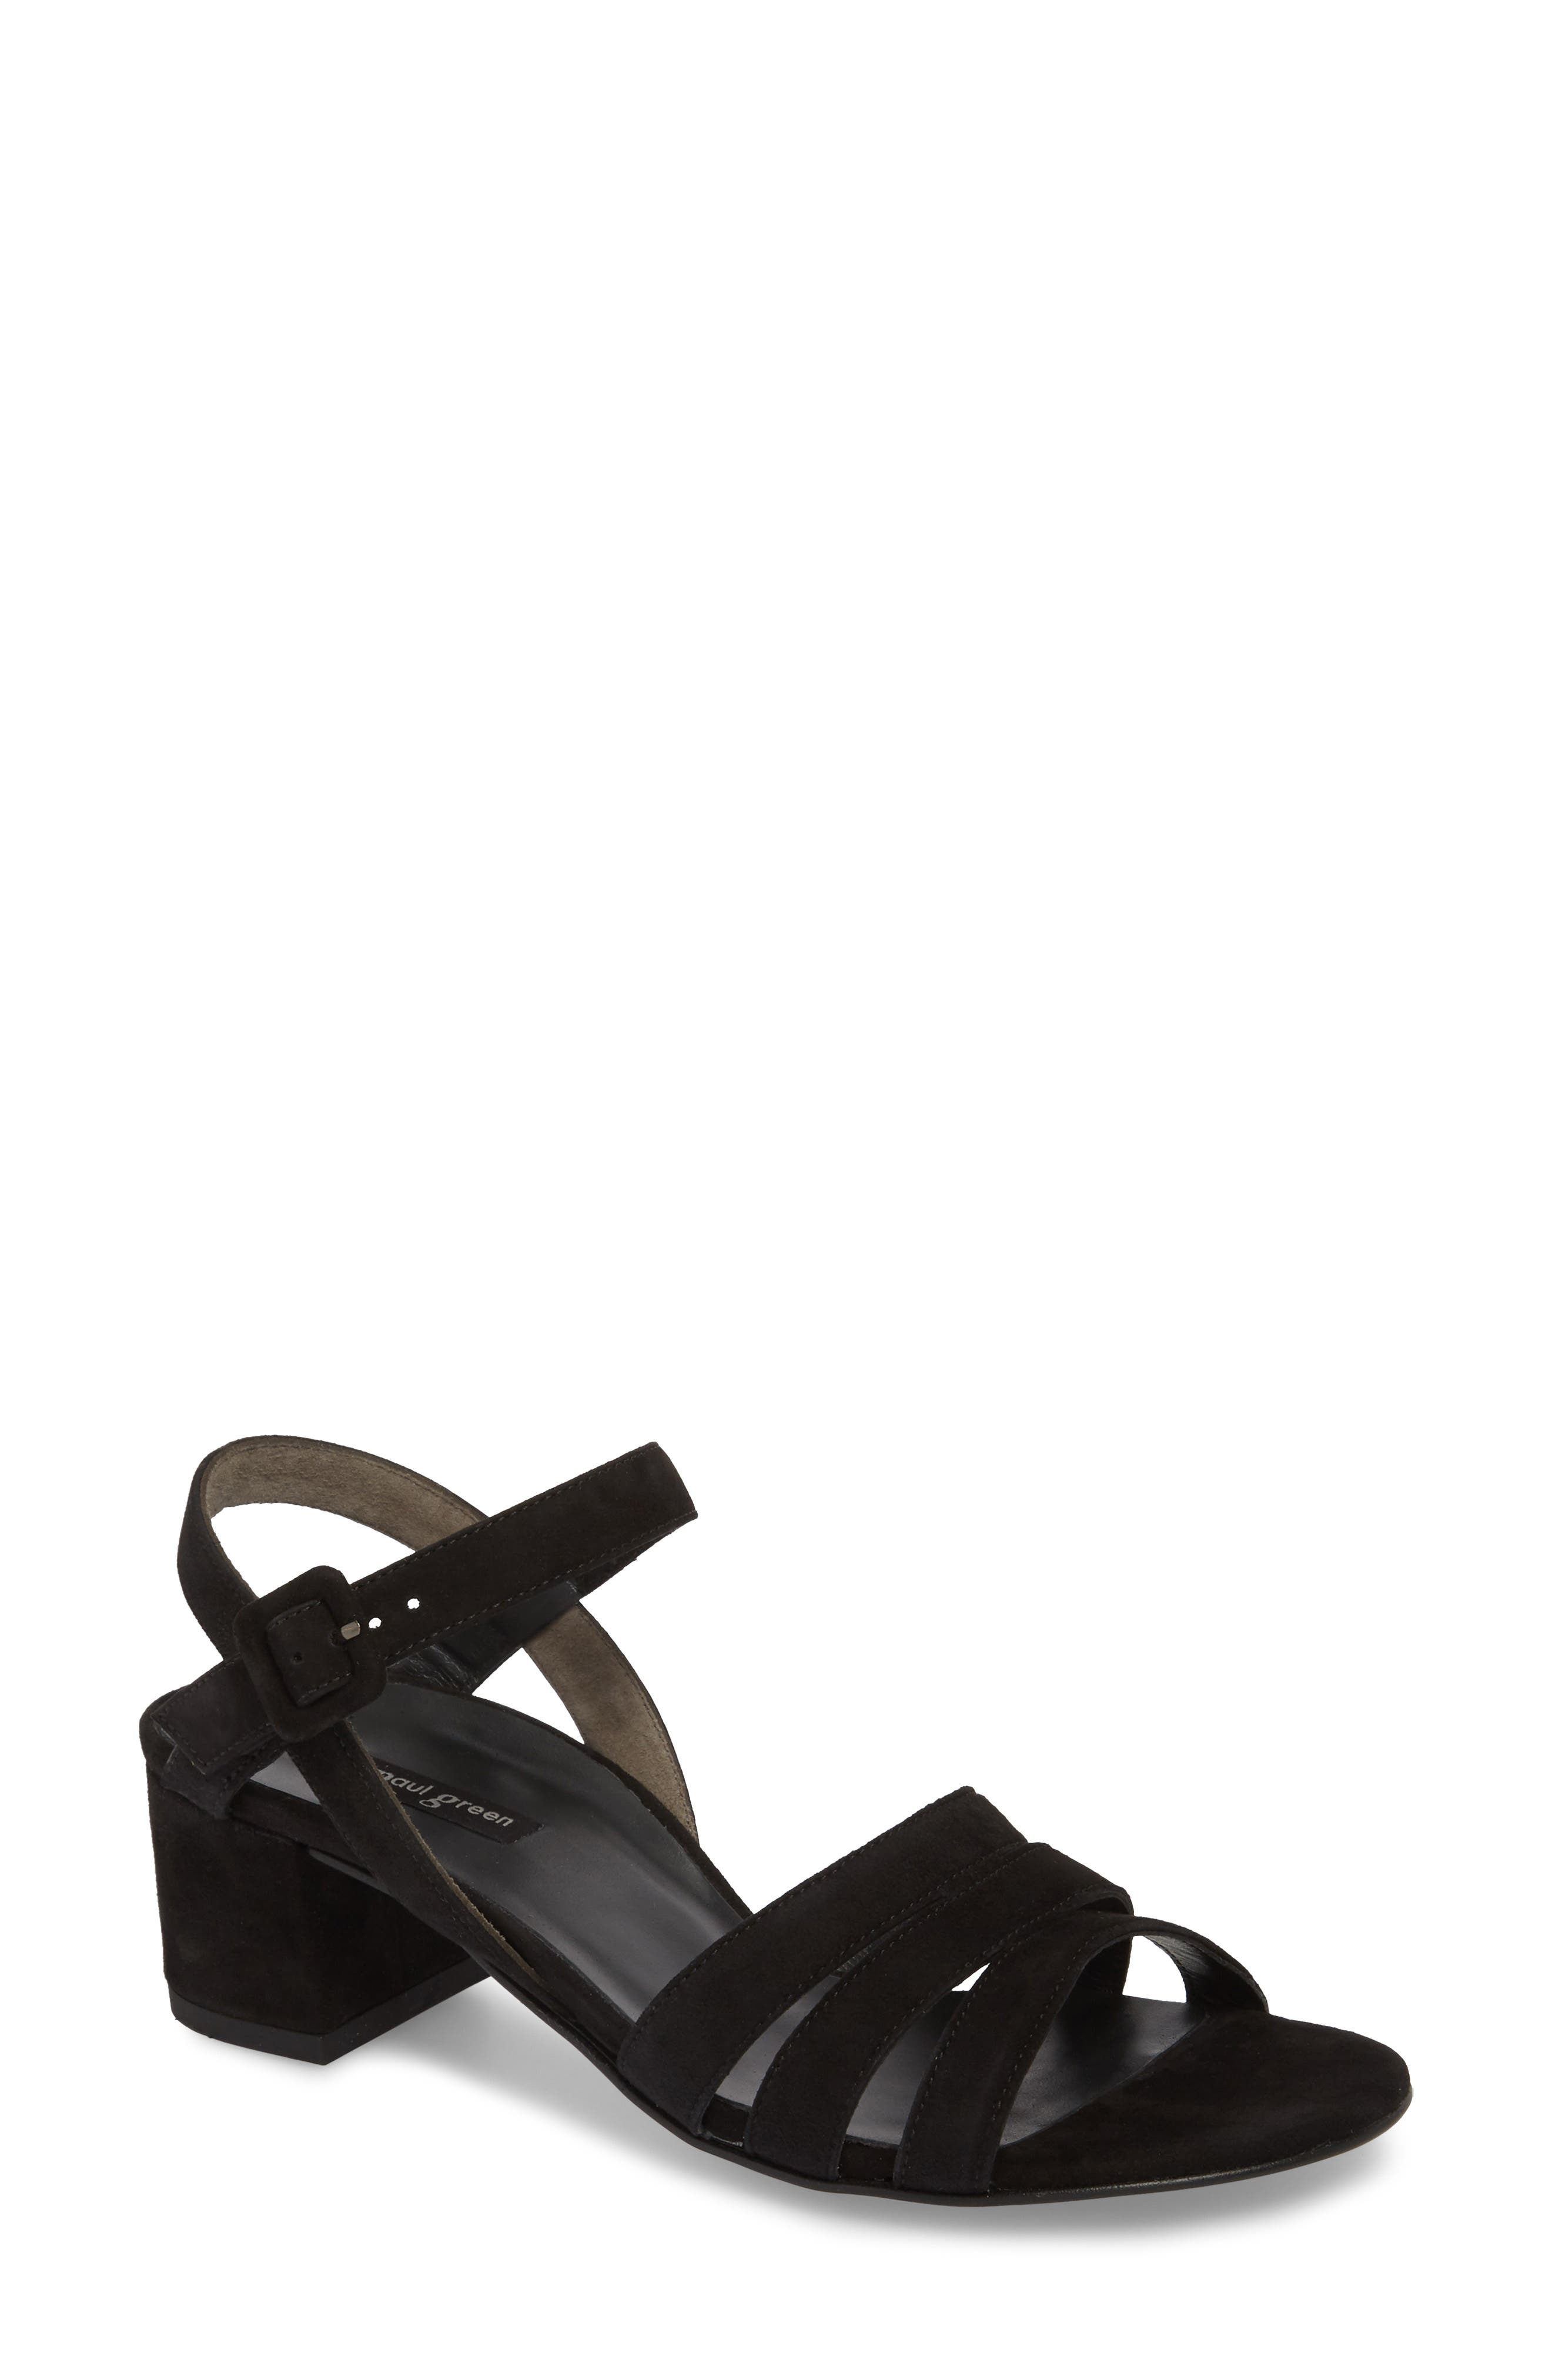 Rosemary Sandal,                             Main thumbnail 1, color,                             Black Suede